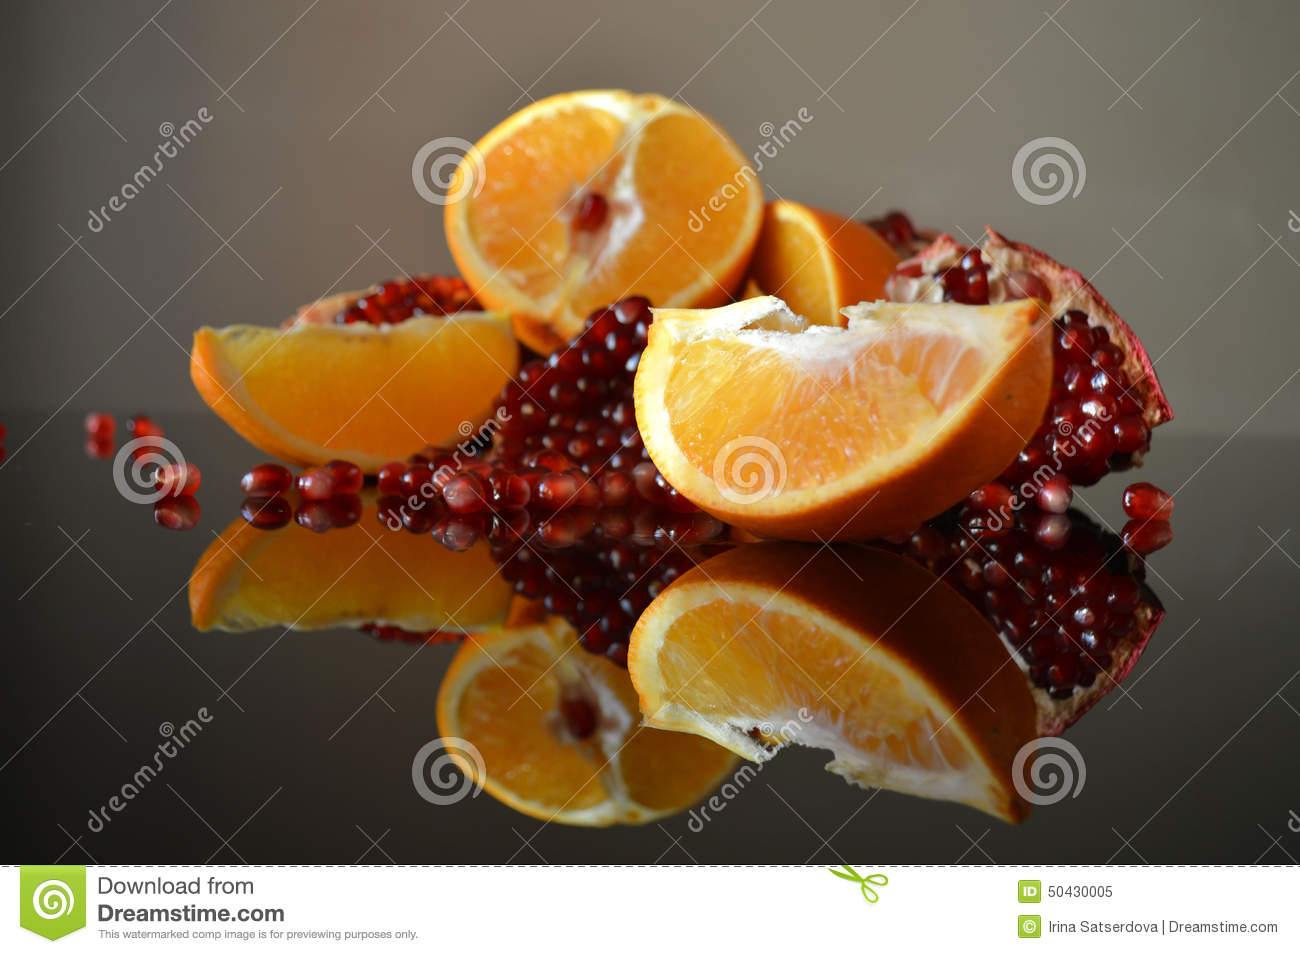 pomegranate-orange-wedges-slices-reflection-surface-table-50430005.jpg